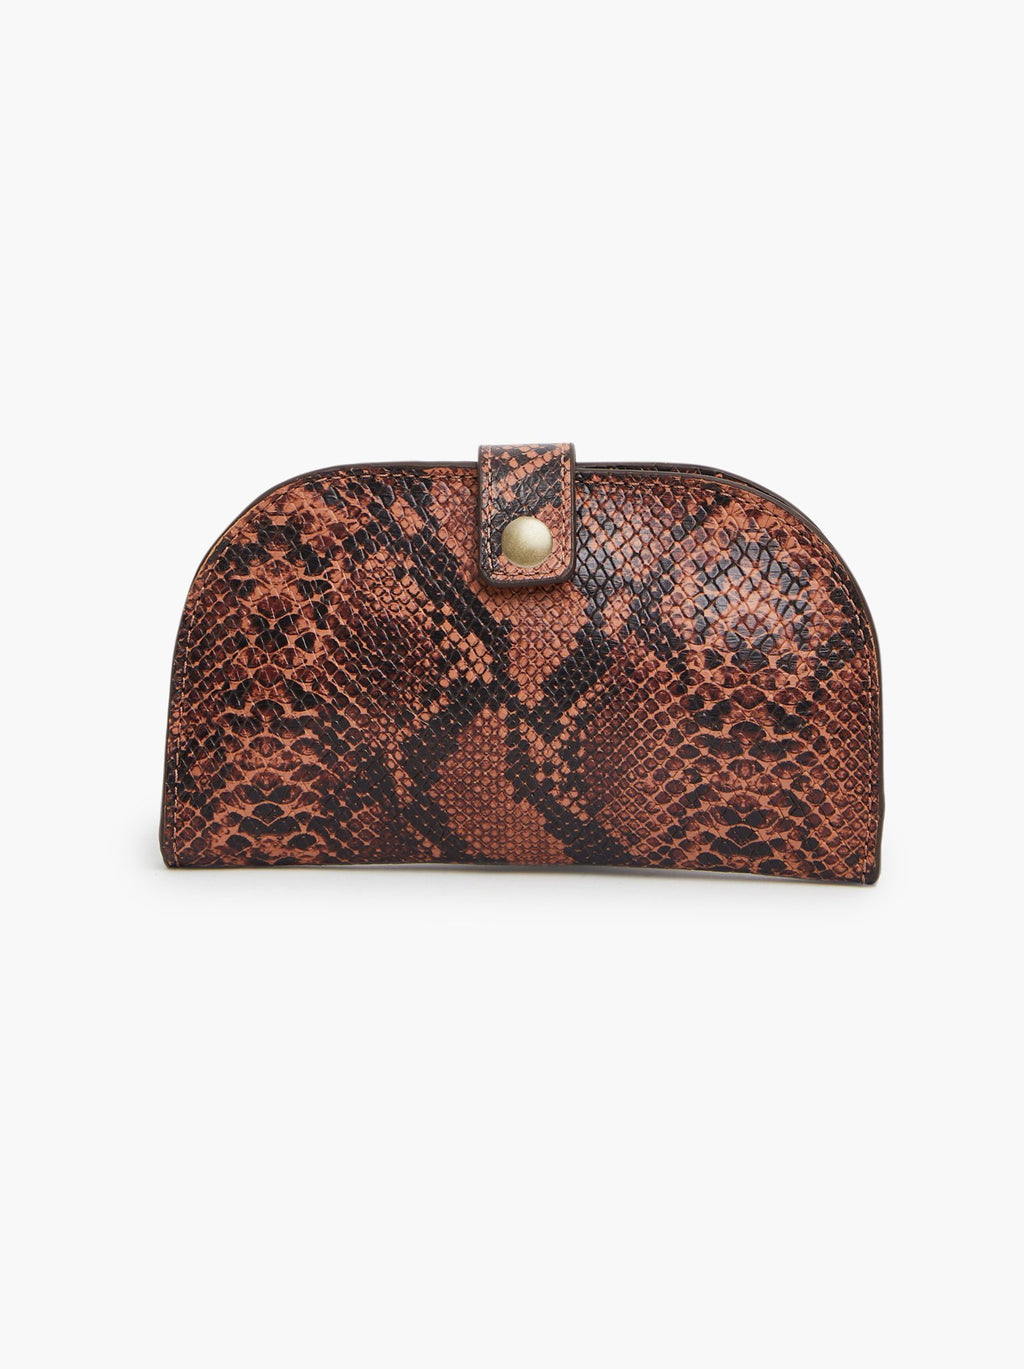 ABLE MARISOL WALLET - Penny Lane Boutique